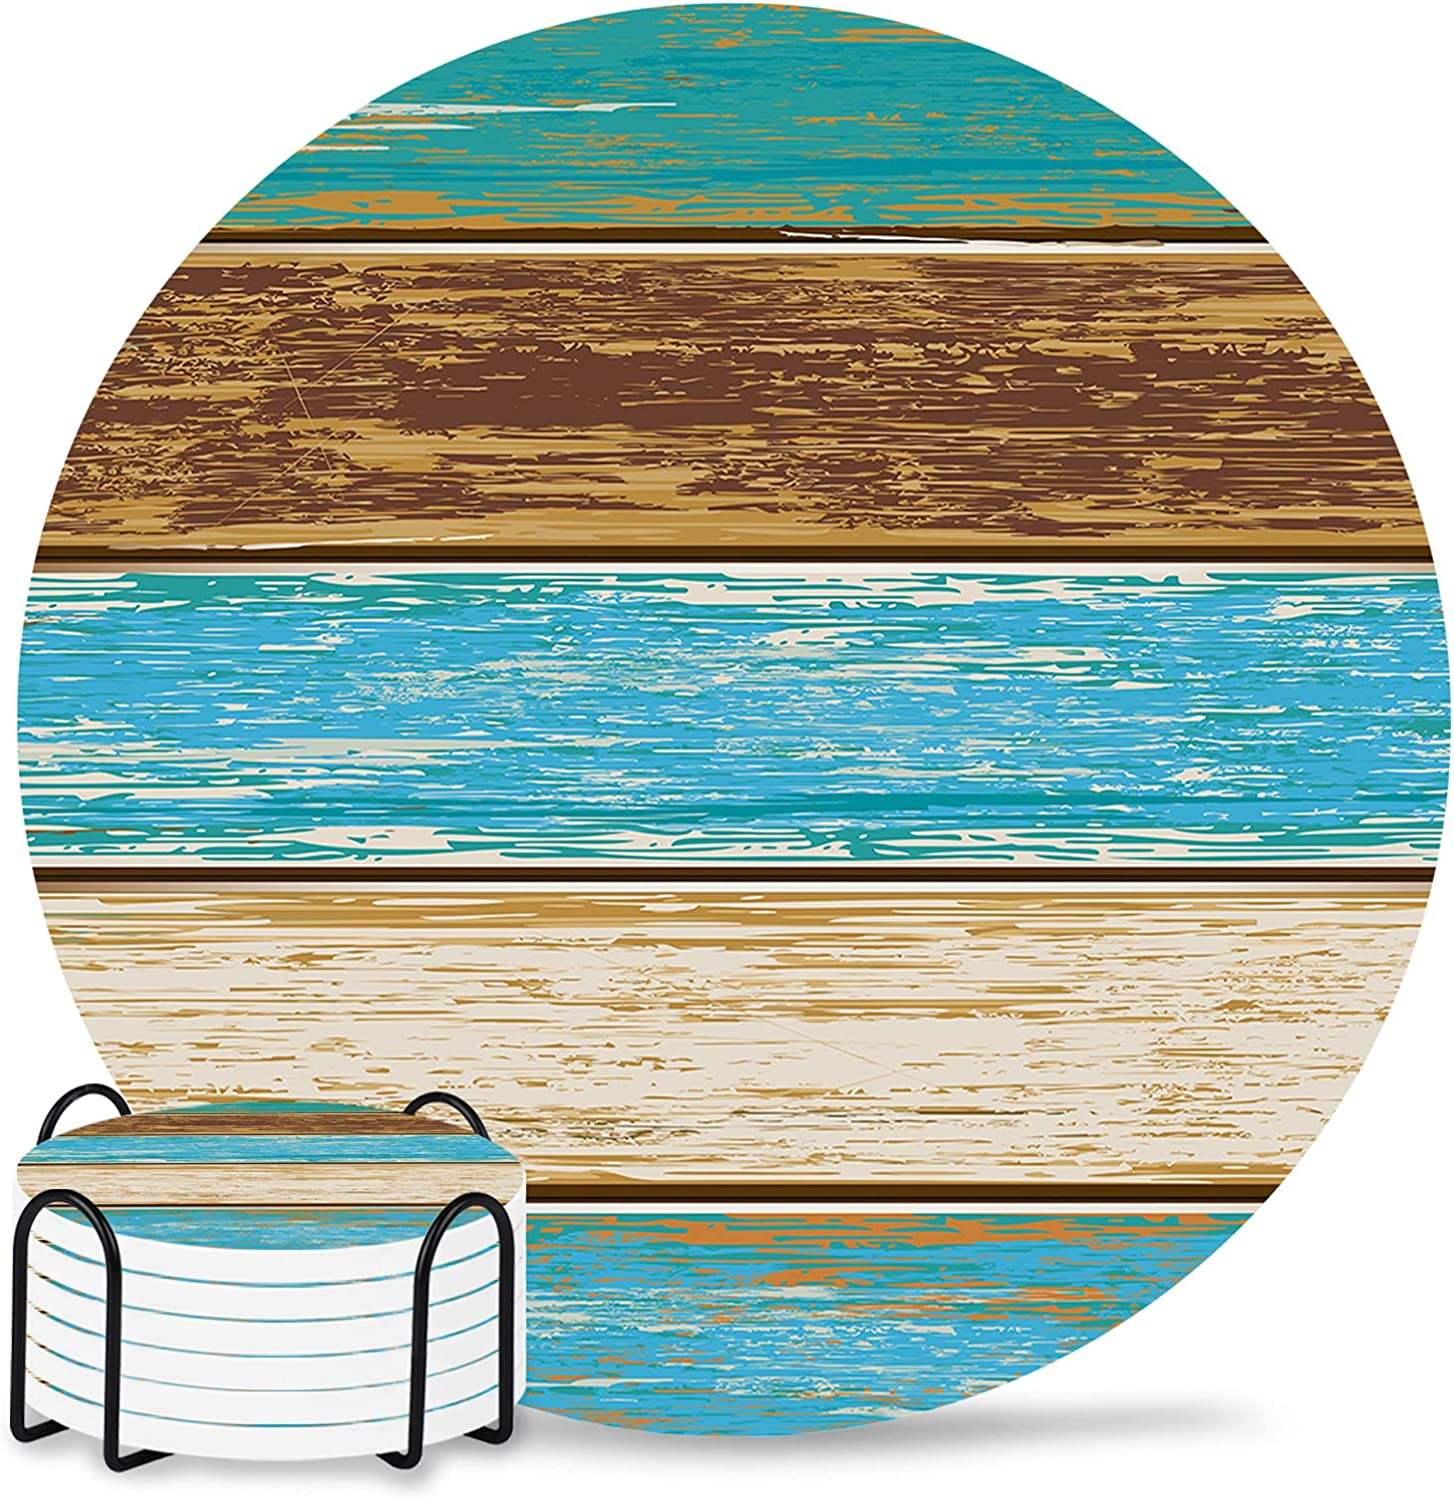 Country Farmhouse Super sale period limited Coasters Round Drinks Set Absorbent Bargain sale Coaster w